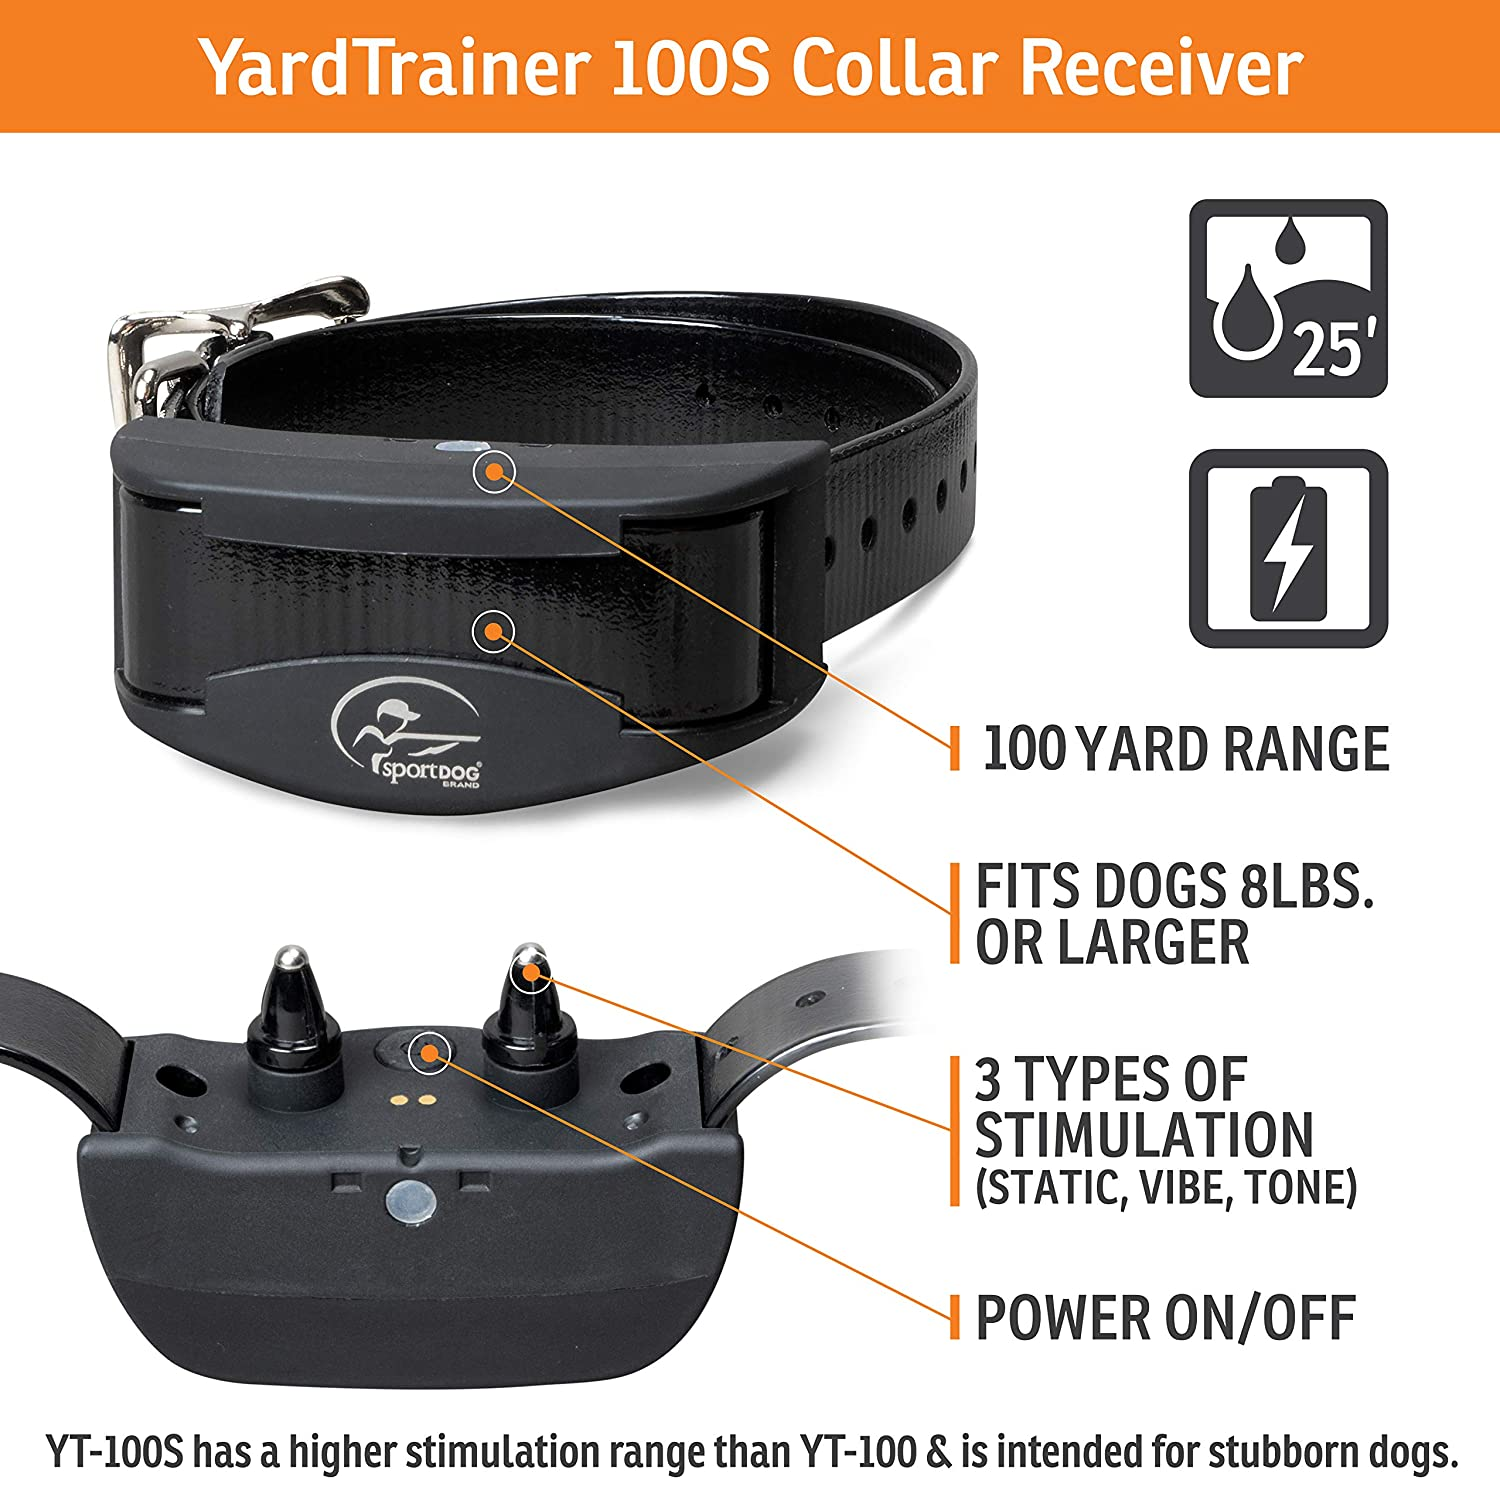 Waterproof Dog Training Collars with Shock and Tone Rechargeable SportDOG Brand YardTrainer Family Remote Trainers Vibrate